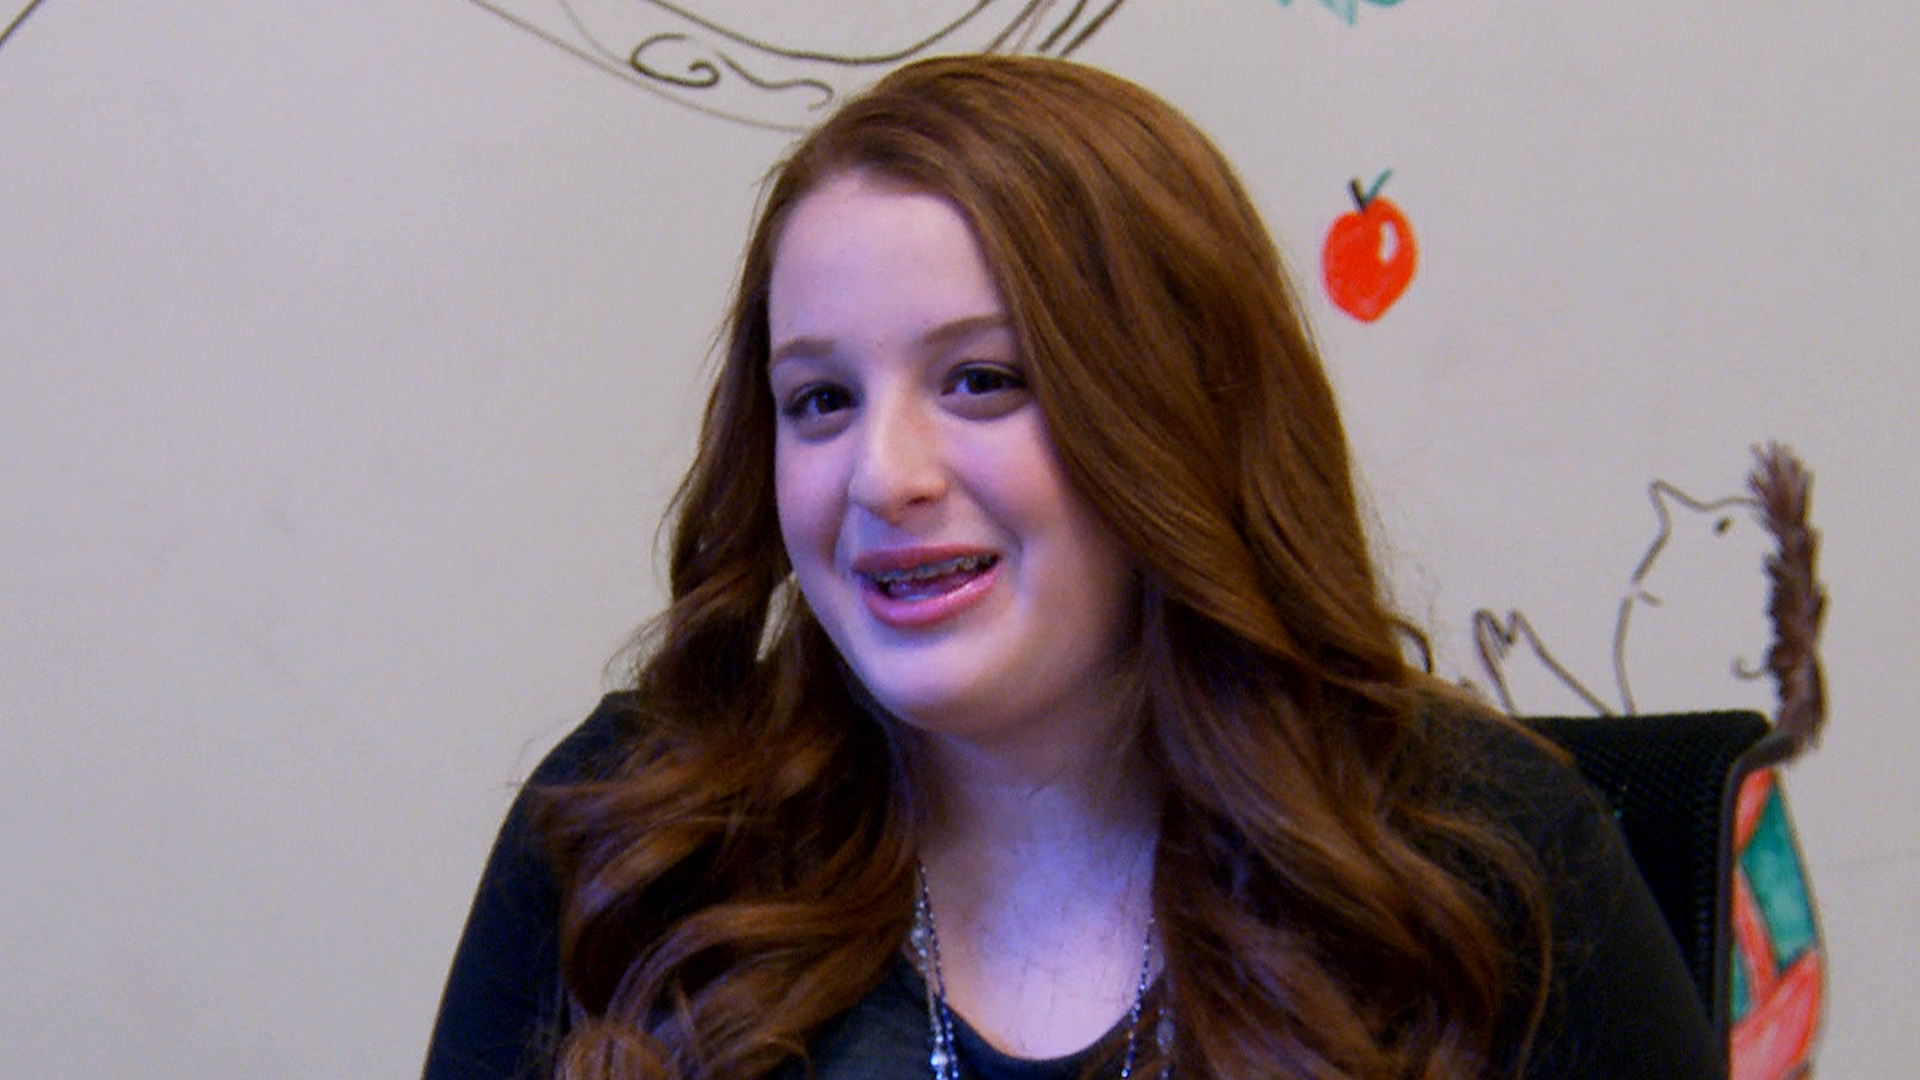 Nyc Teen Starts Lucrative Baby-Sitting Business - Todaycom-1738